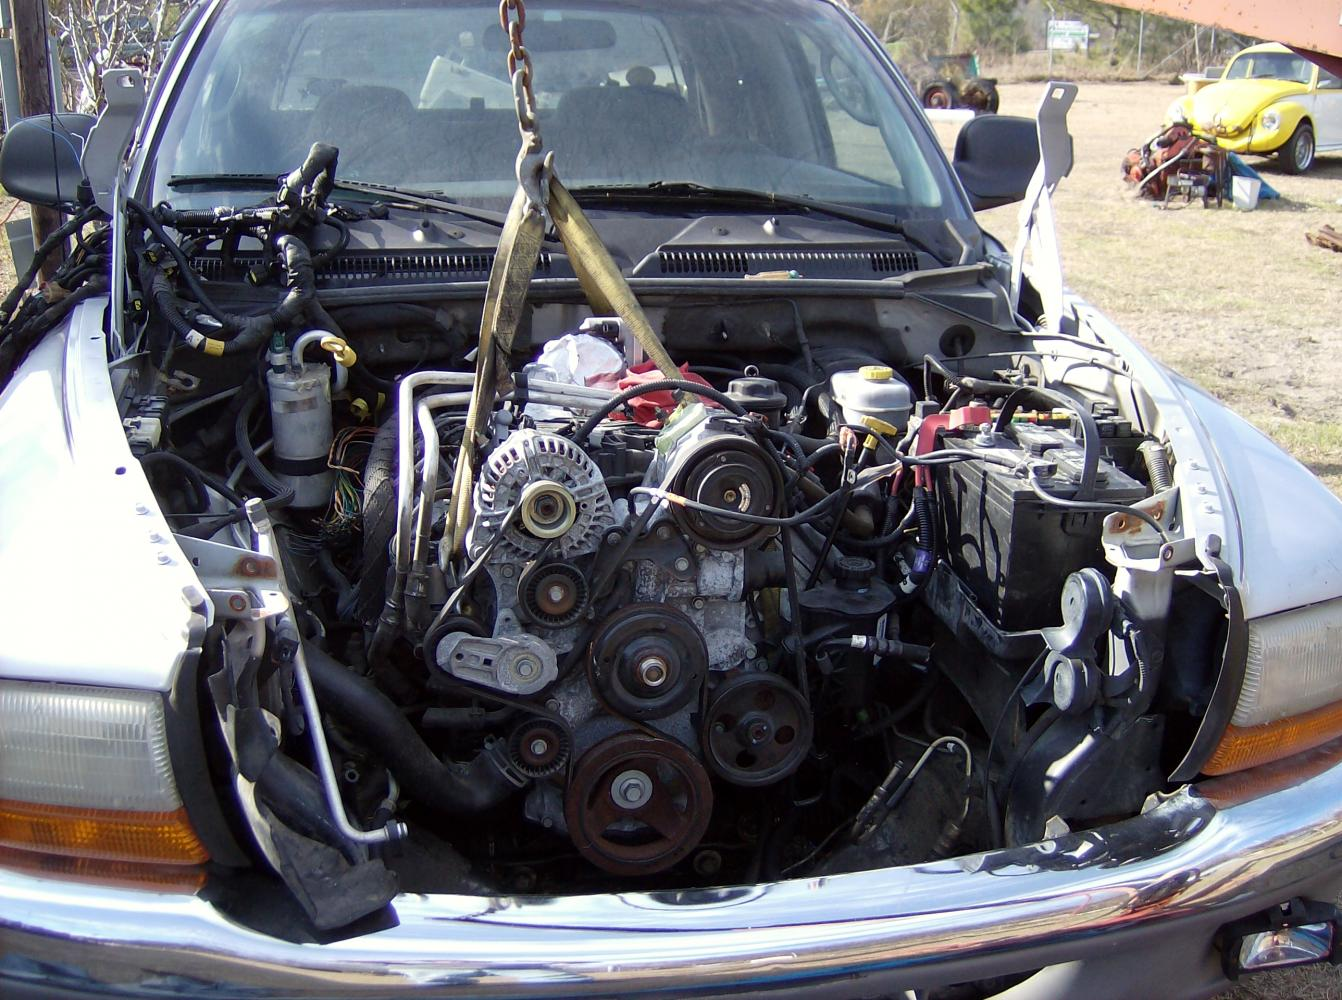 Diagram Chrysler 5 7 Hemi Engine Wiring Library Non Click Image For Larger Version Name Dodge Dakota 57 Hemimotor 011